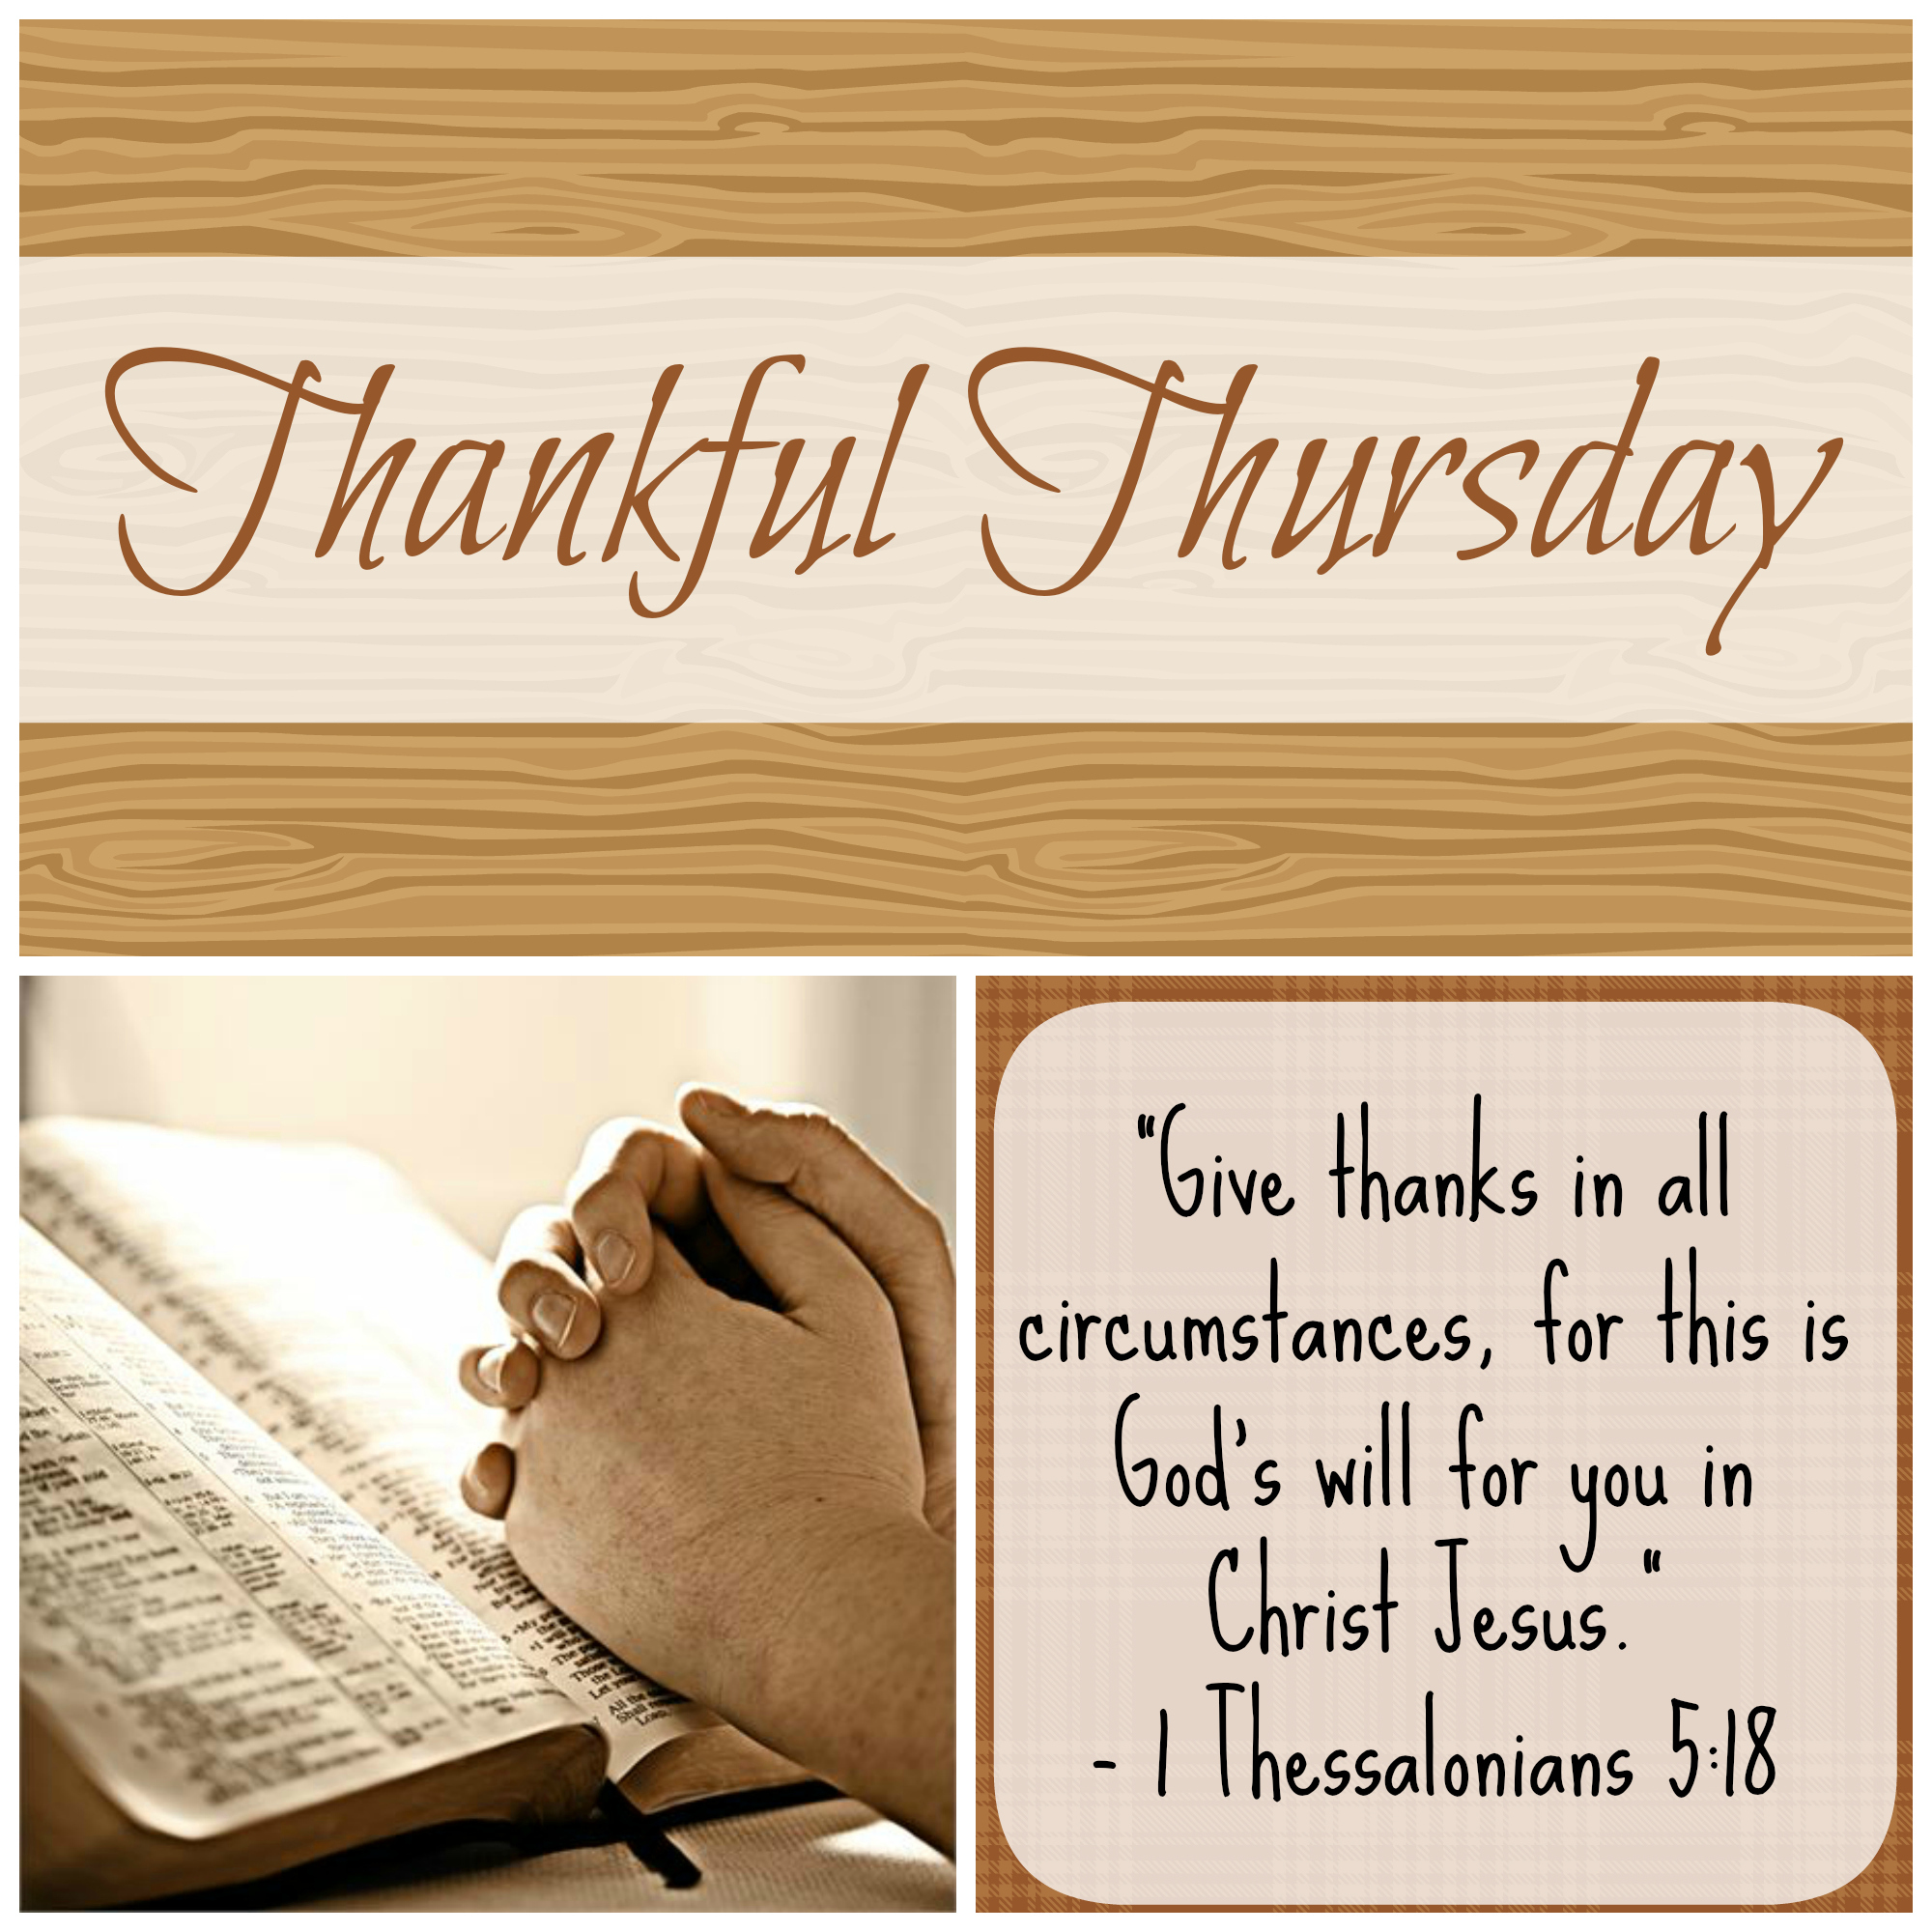 Thankful Thursday Inspirational Quotes: Thankful Thursday Quotes. QuotesGram